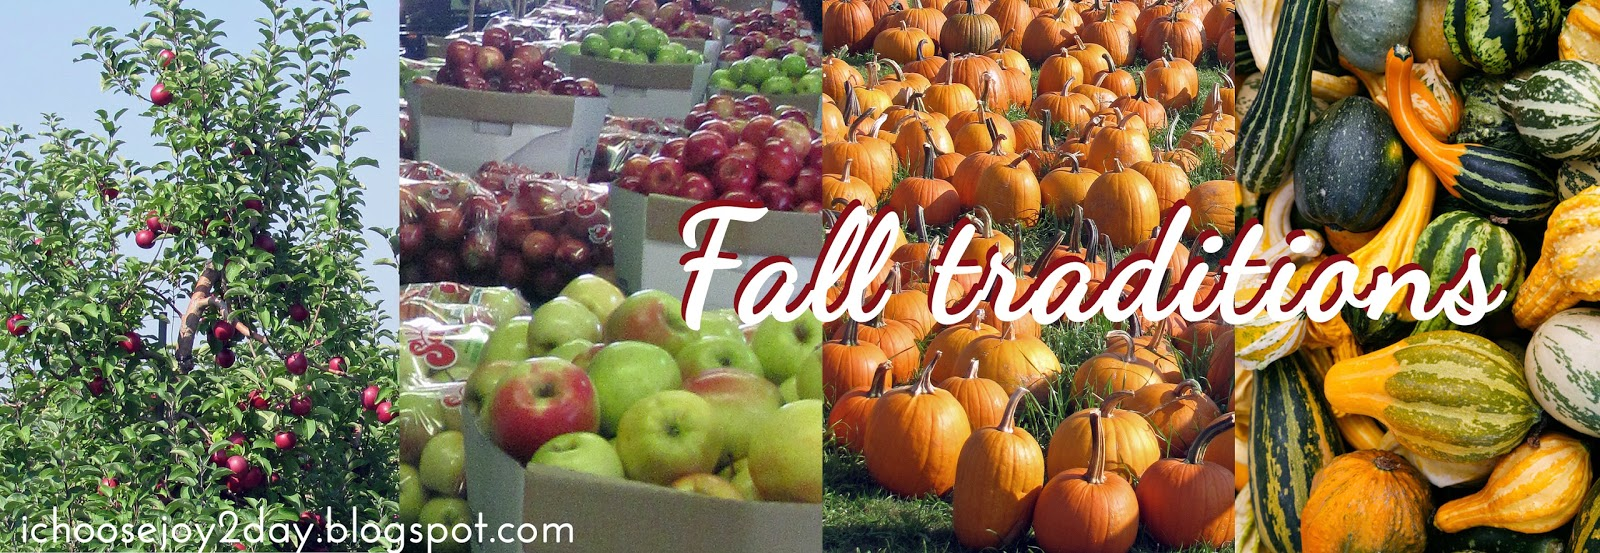 http://ichoosejoy2day.blogspot.com/2014/09/fall-traditions.html#more